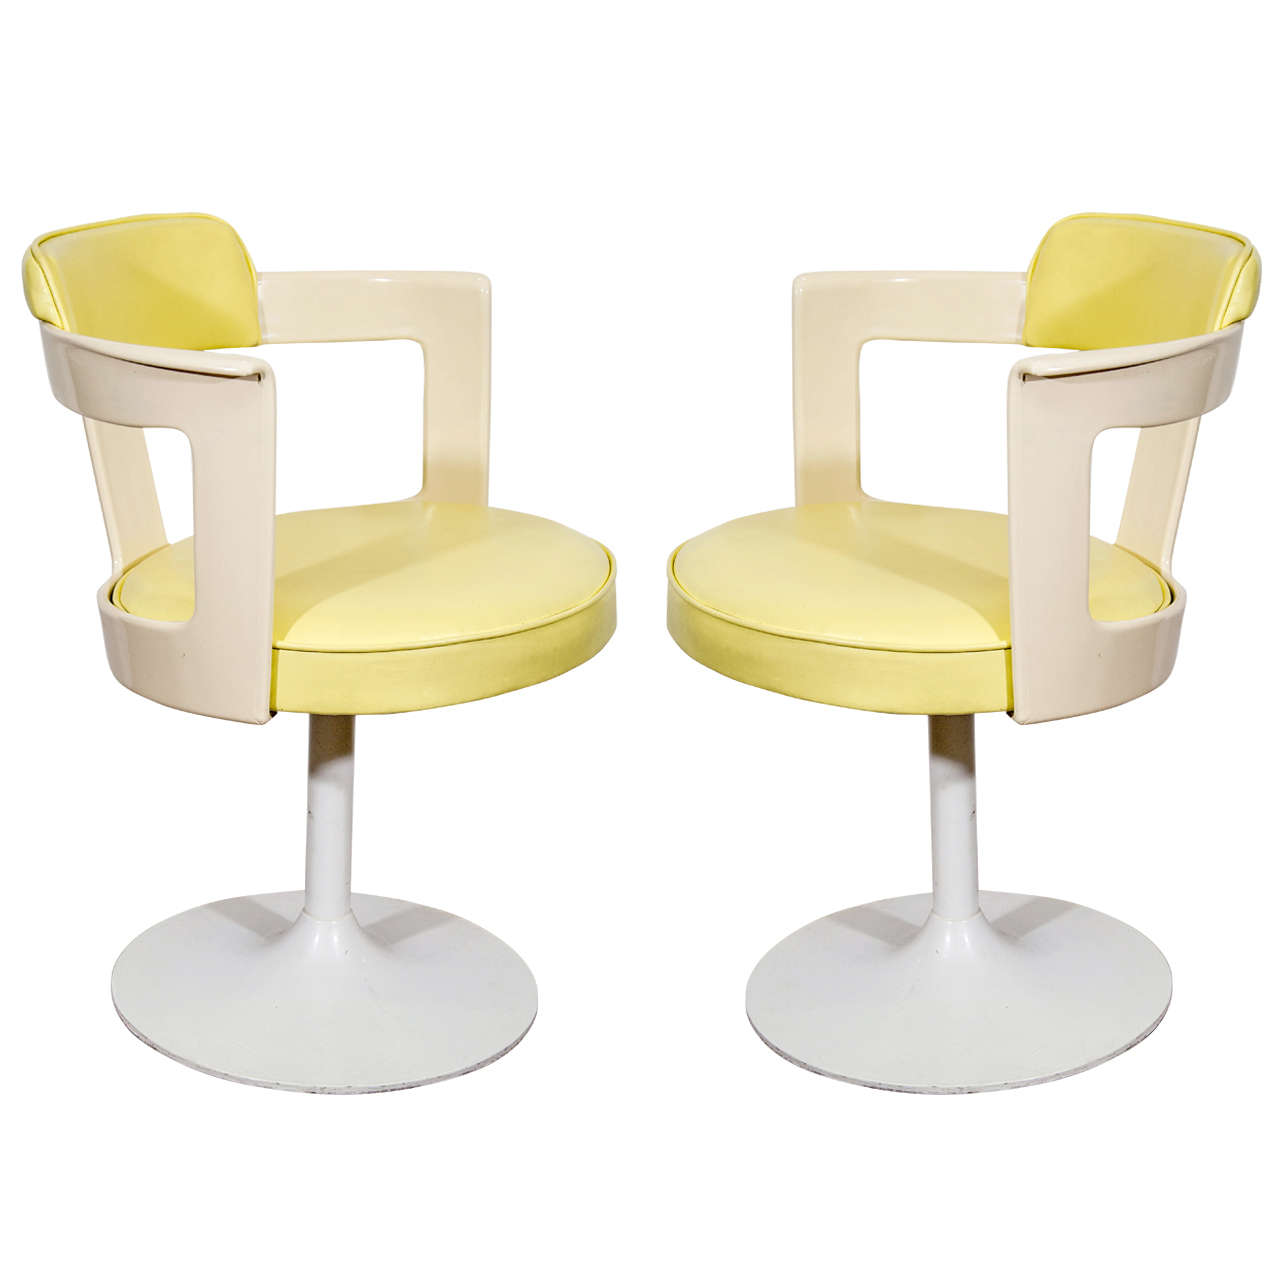 Pair Of Daystrom Tulip Chairs In White And Yellow For Sale